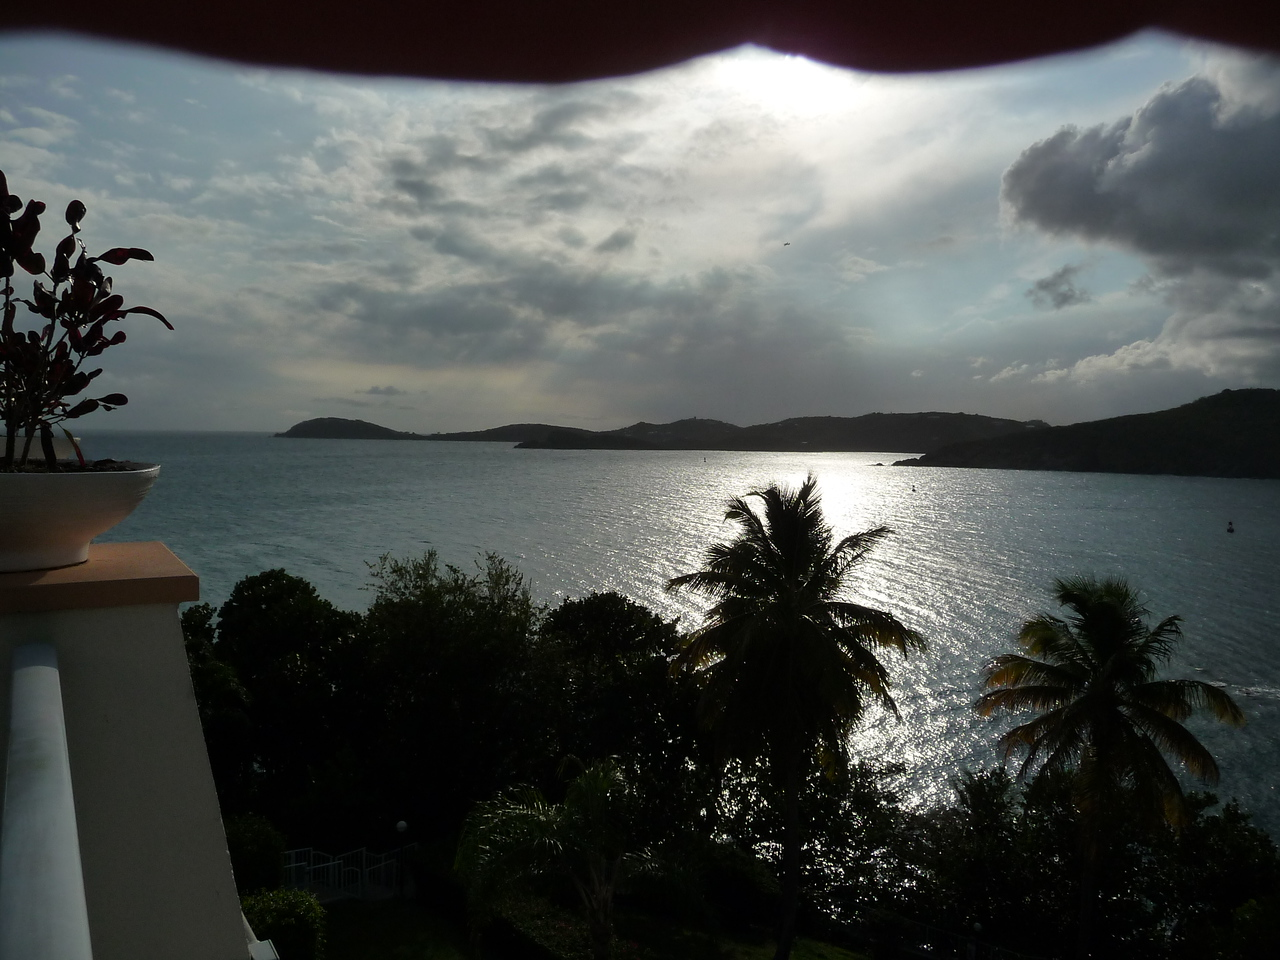 View from Rumbar outdoor patio at the Frenchmans Reef--looking to the left.